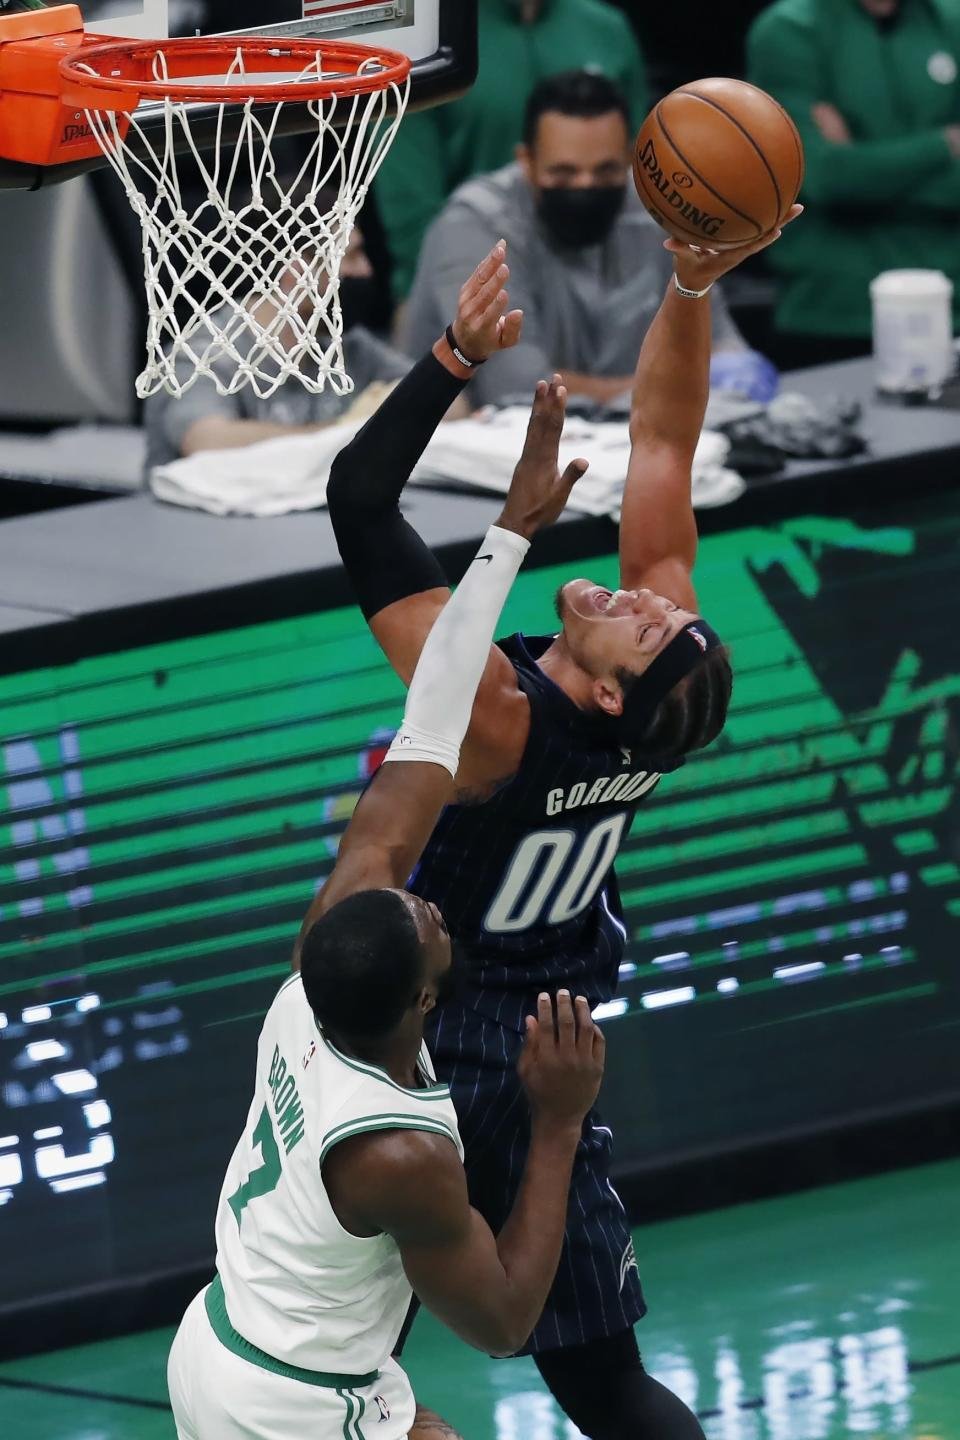 Orlando Magic's Aaron Gordon (00) shoots against Boston Celtics' Jaylen Brown (7) during the first half of an NBA basketball game, Sunday, March 21, 2021, in Boston. (AP Photo/Michael Dwyer)